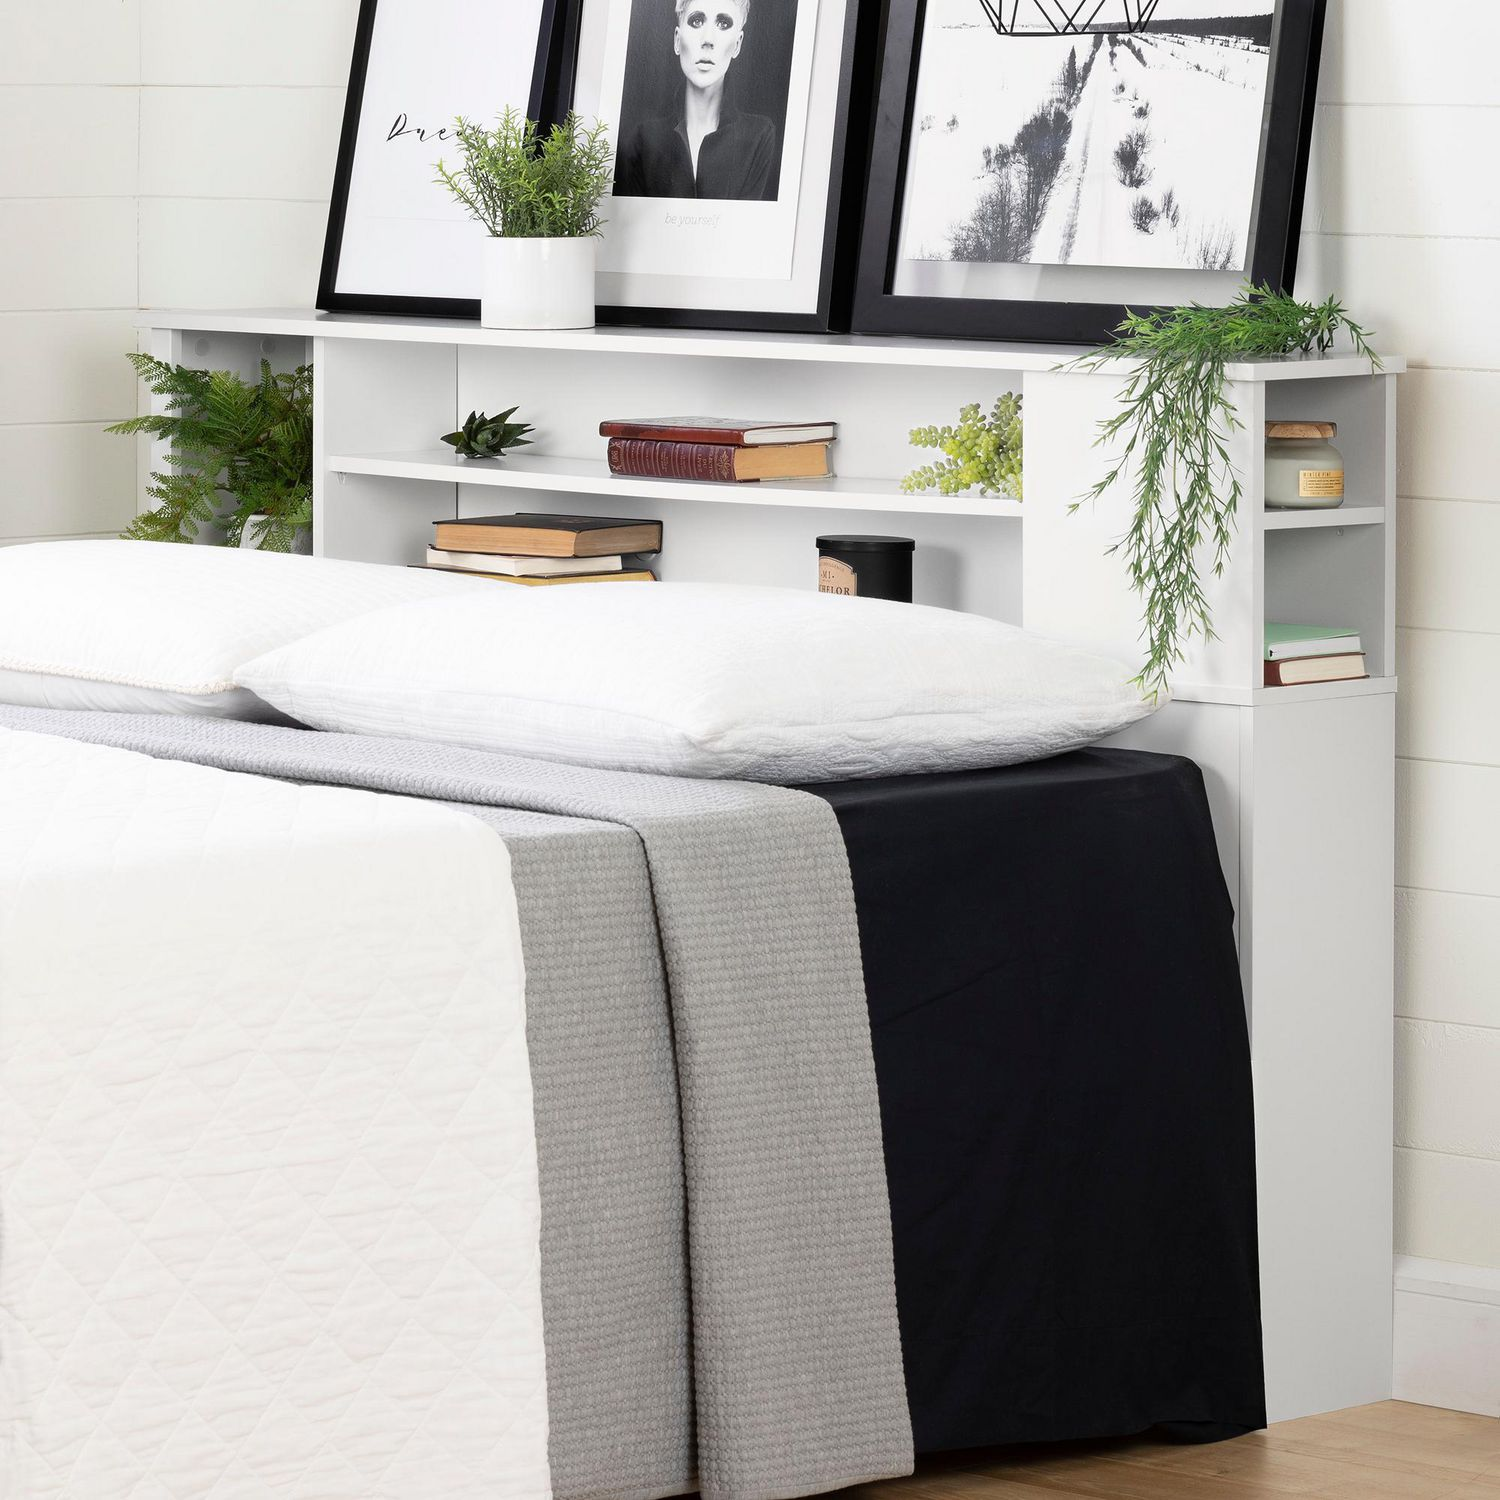 king wood white tufted bookshelf queen headboards headboard fabric bed size bookcase full upholstered